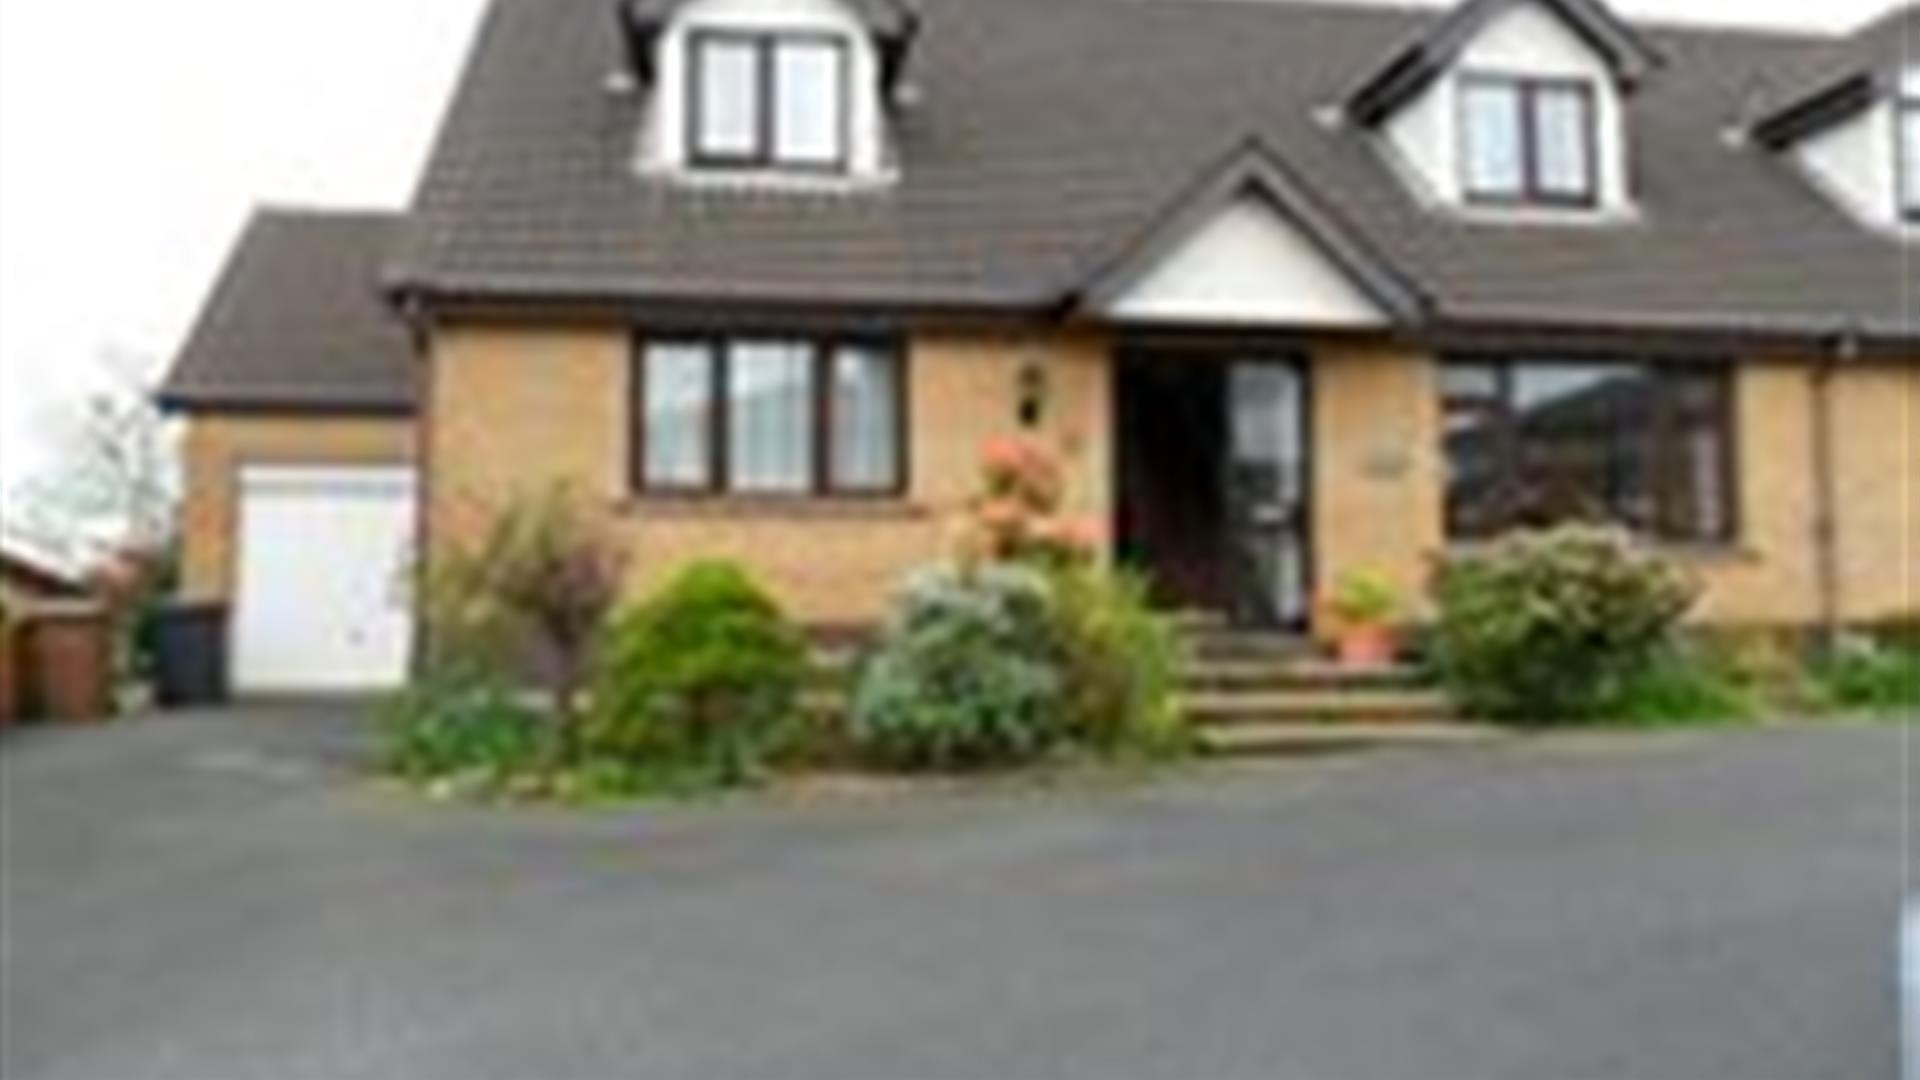 Image shows front of property with a few low steps and tarmac driveway